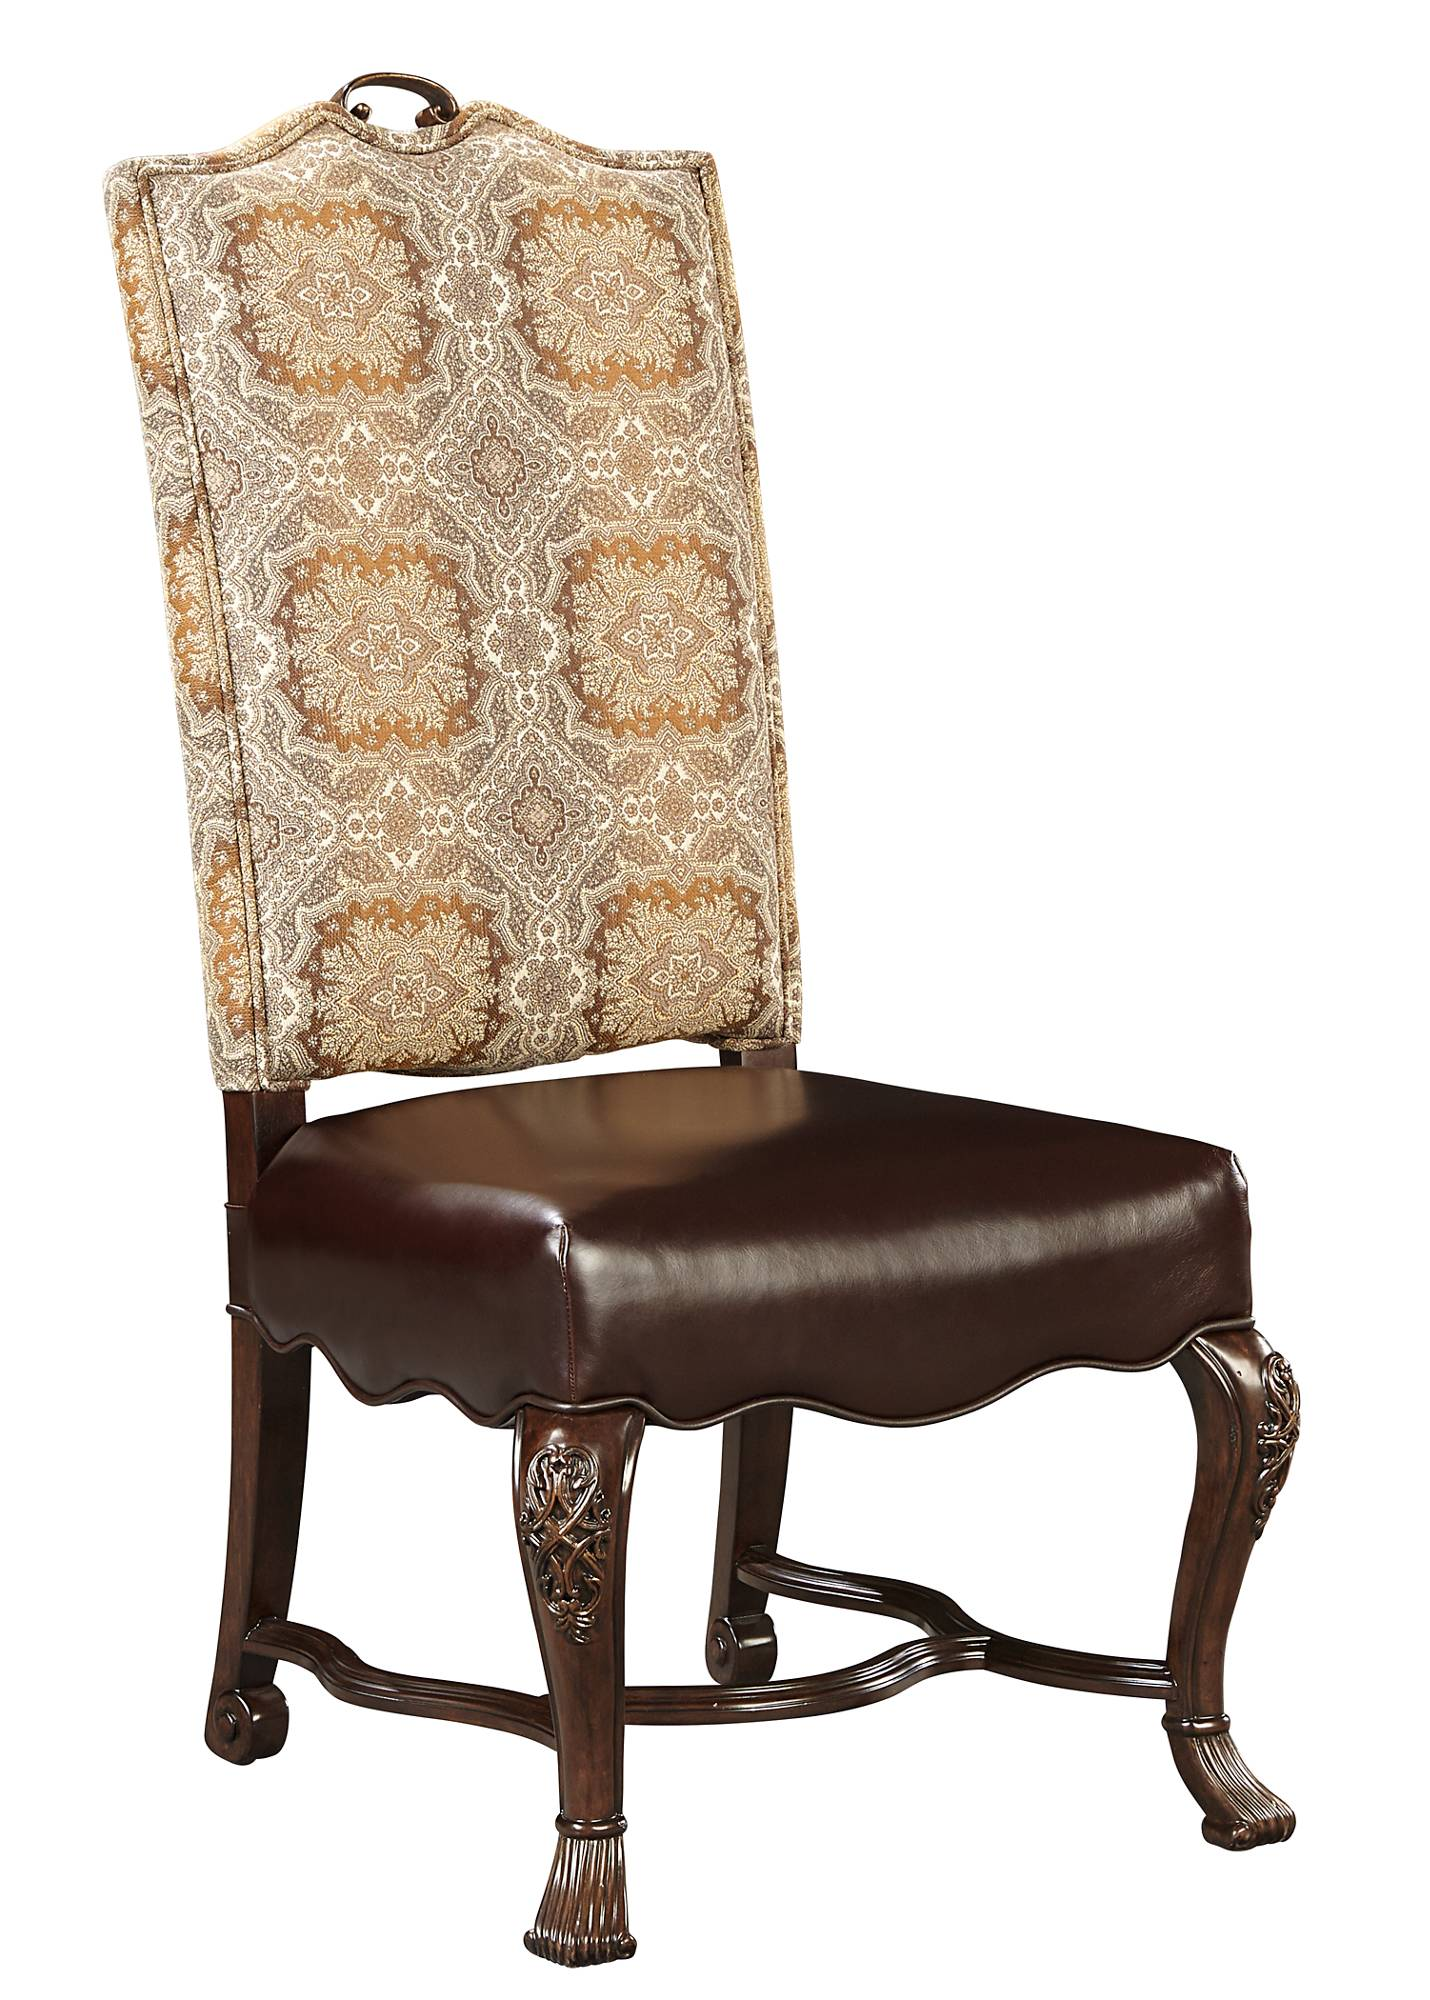 Stanley Furniture Casa D'Onore Upholstered Side Chair  - Item Number: 443-11-65